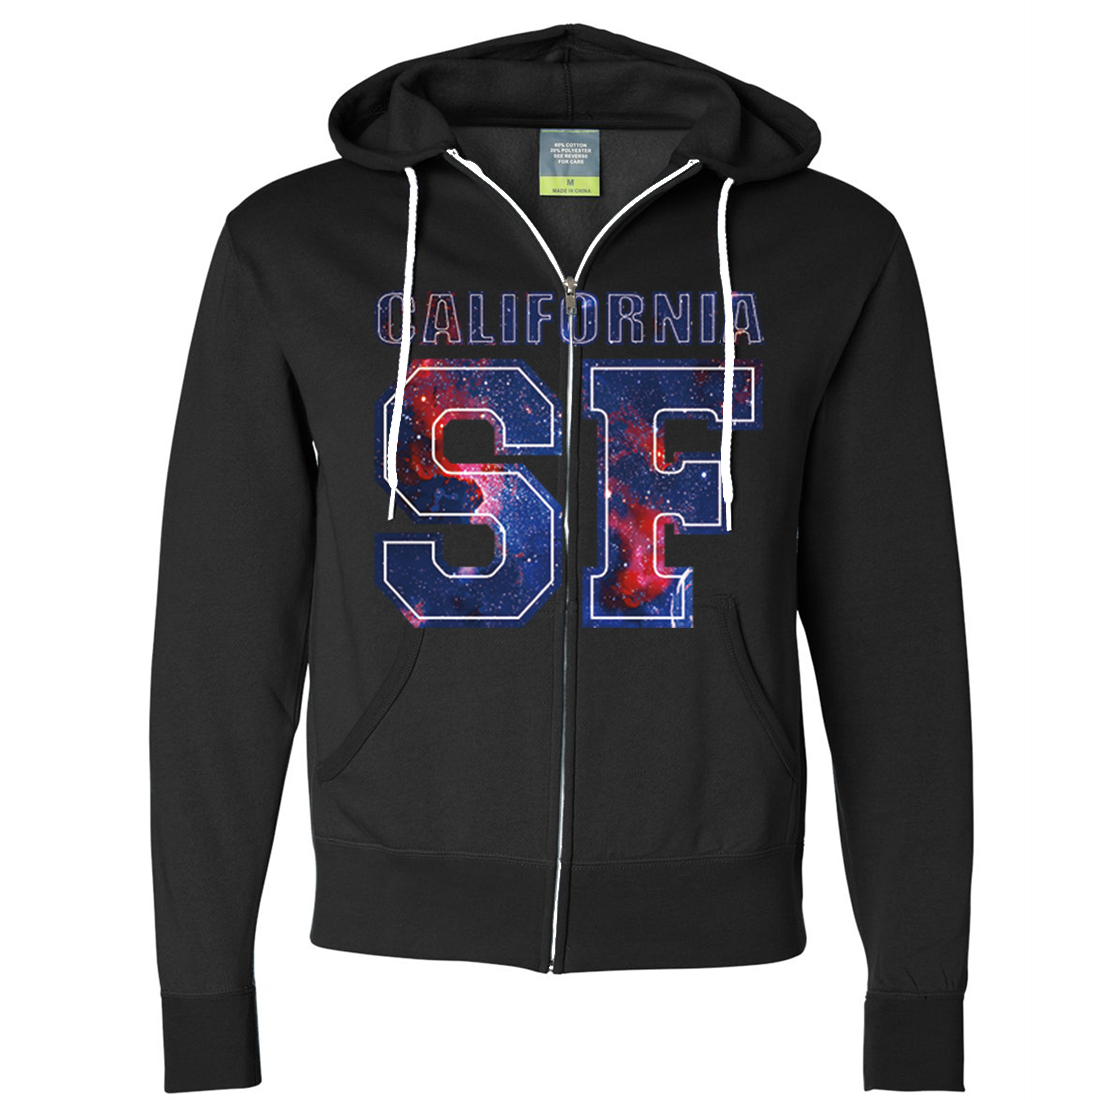 California SF Nebula Zip-Up Hoodie